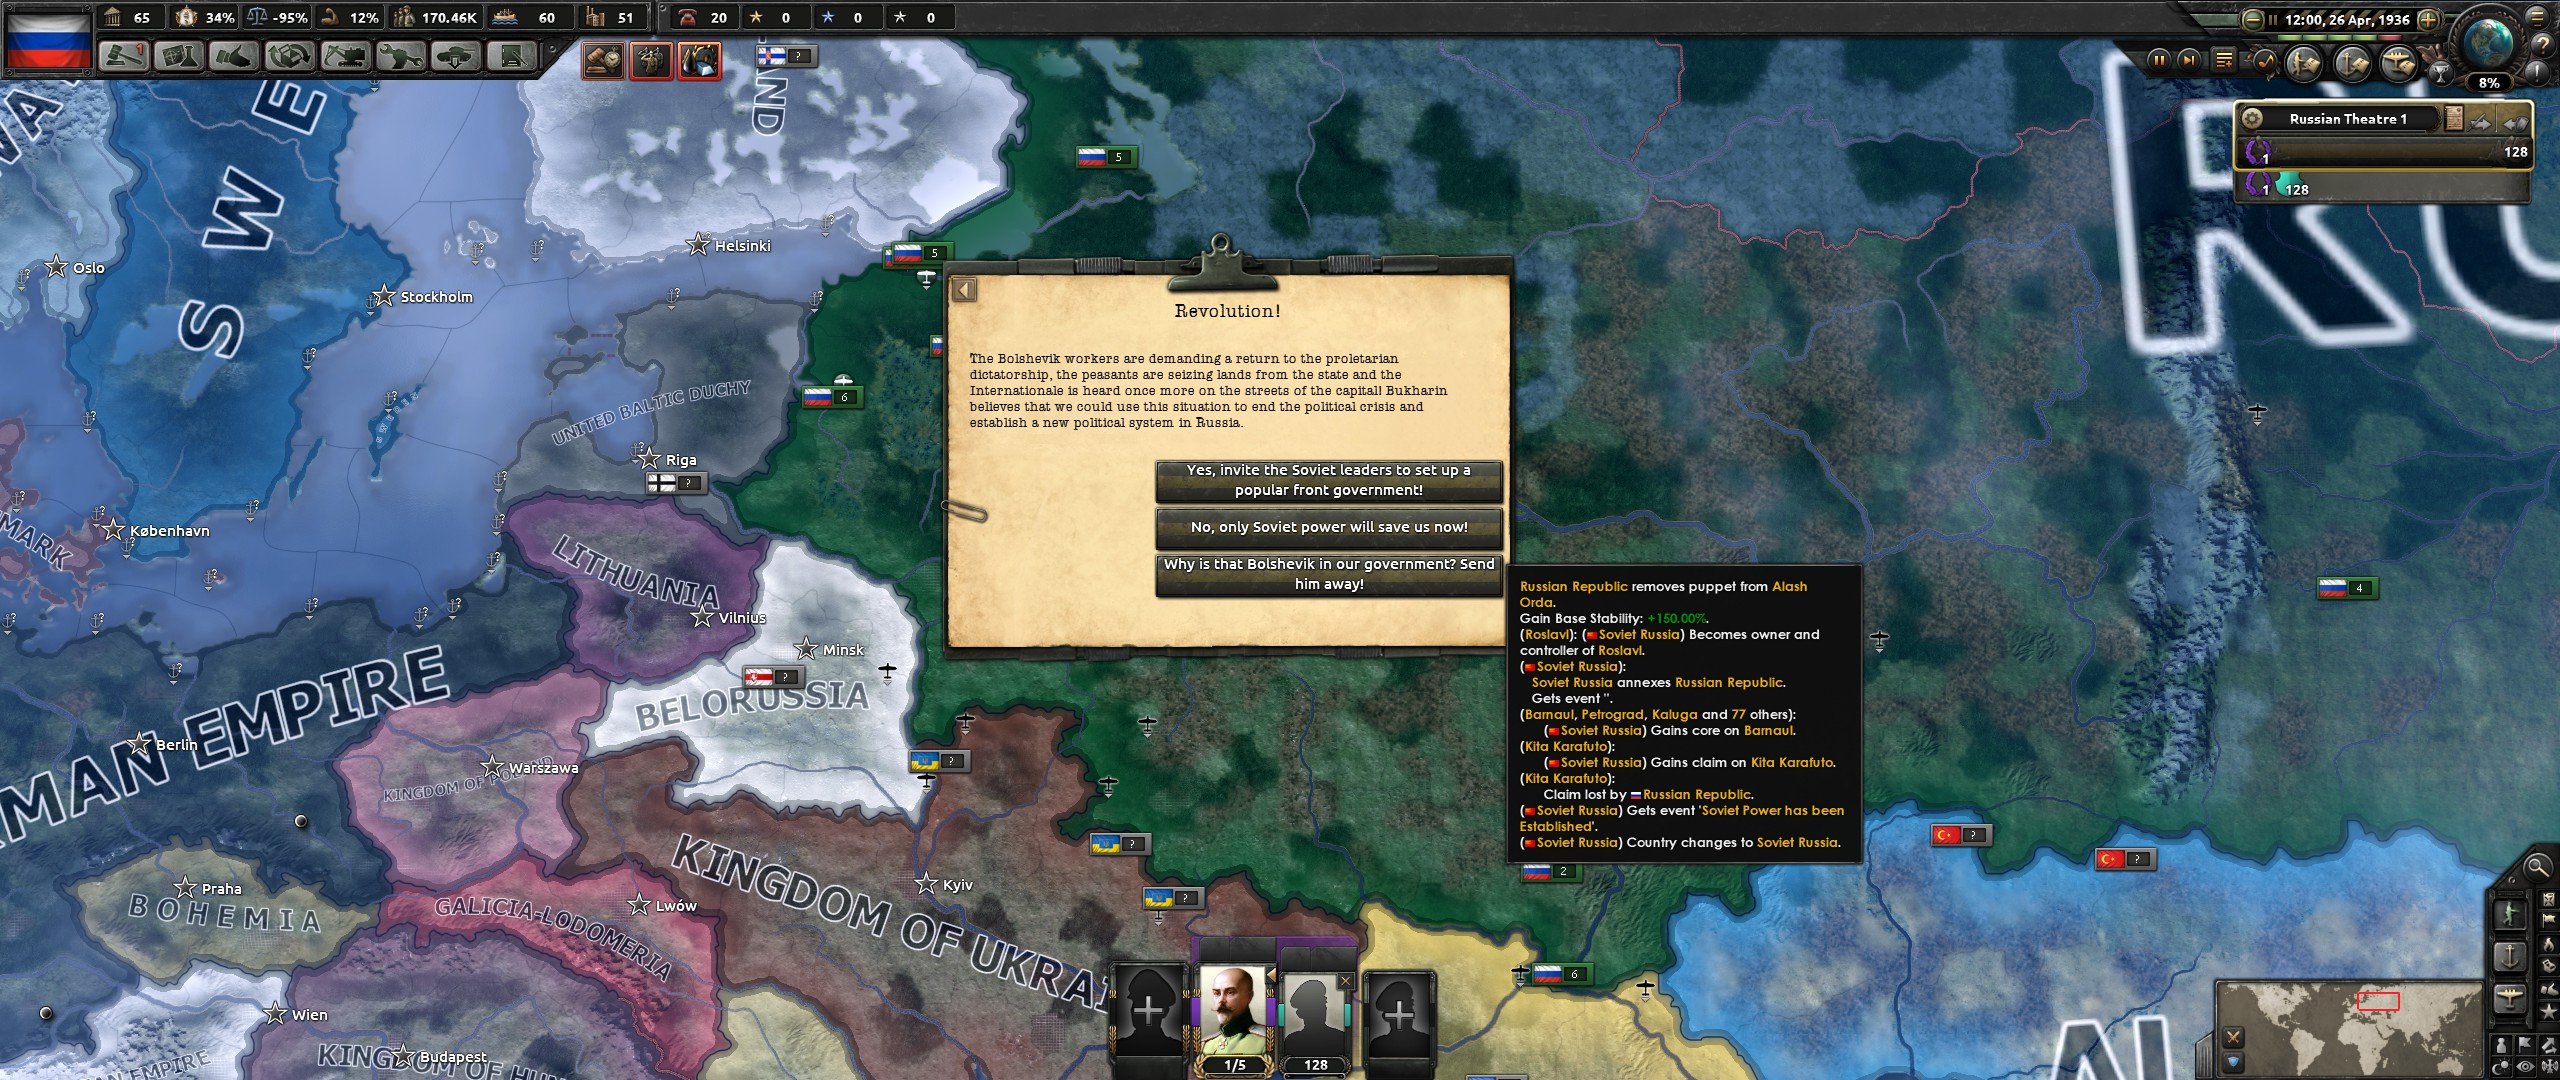 Steam Community :: Guide :: How to Form the Soviet Union in